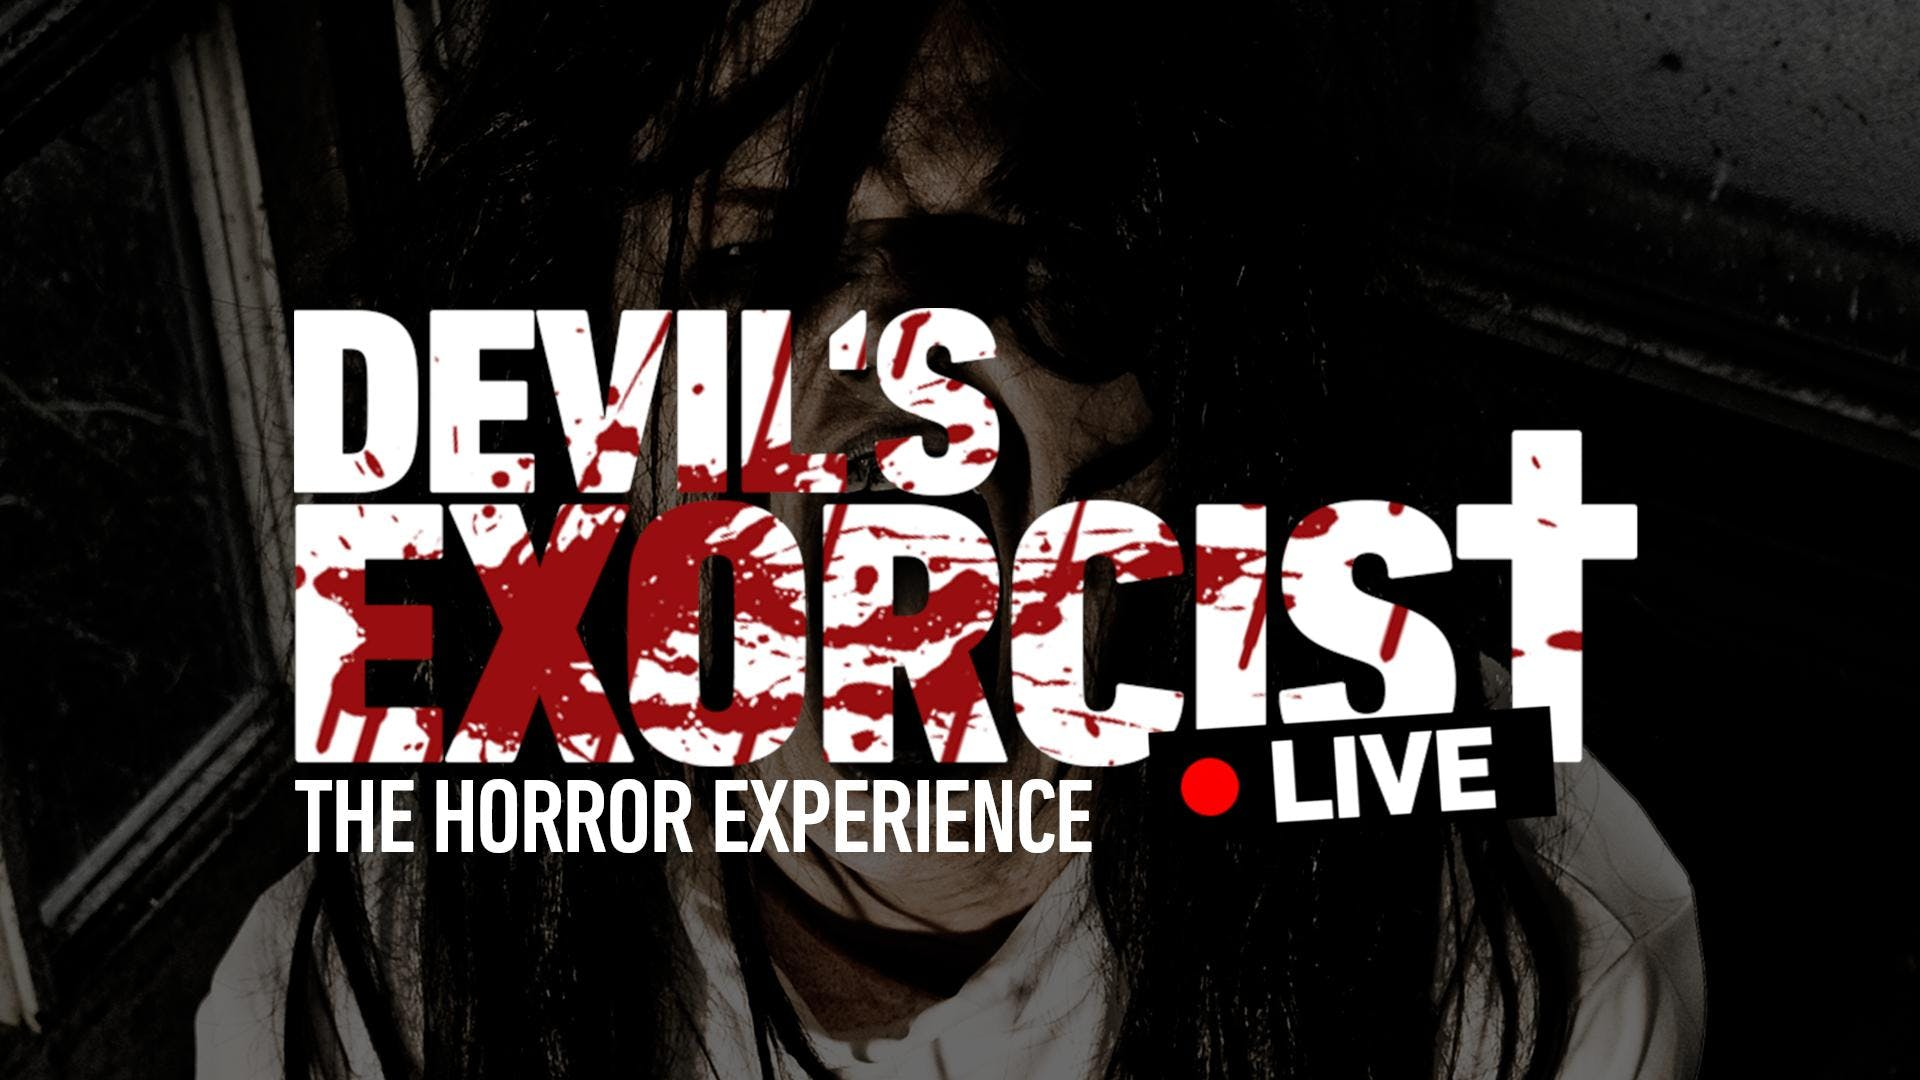 PREVIEW: DEVIL'S EXORCIST - Die Horror-Experience | Bochum